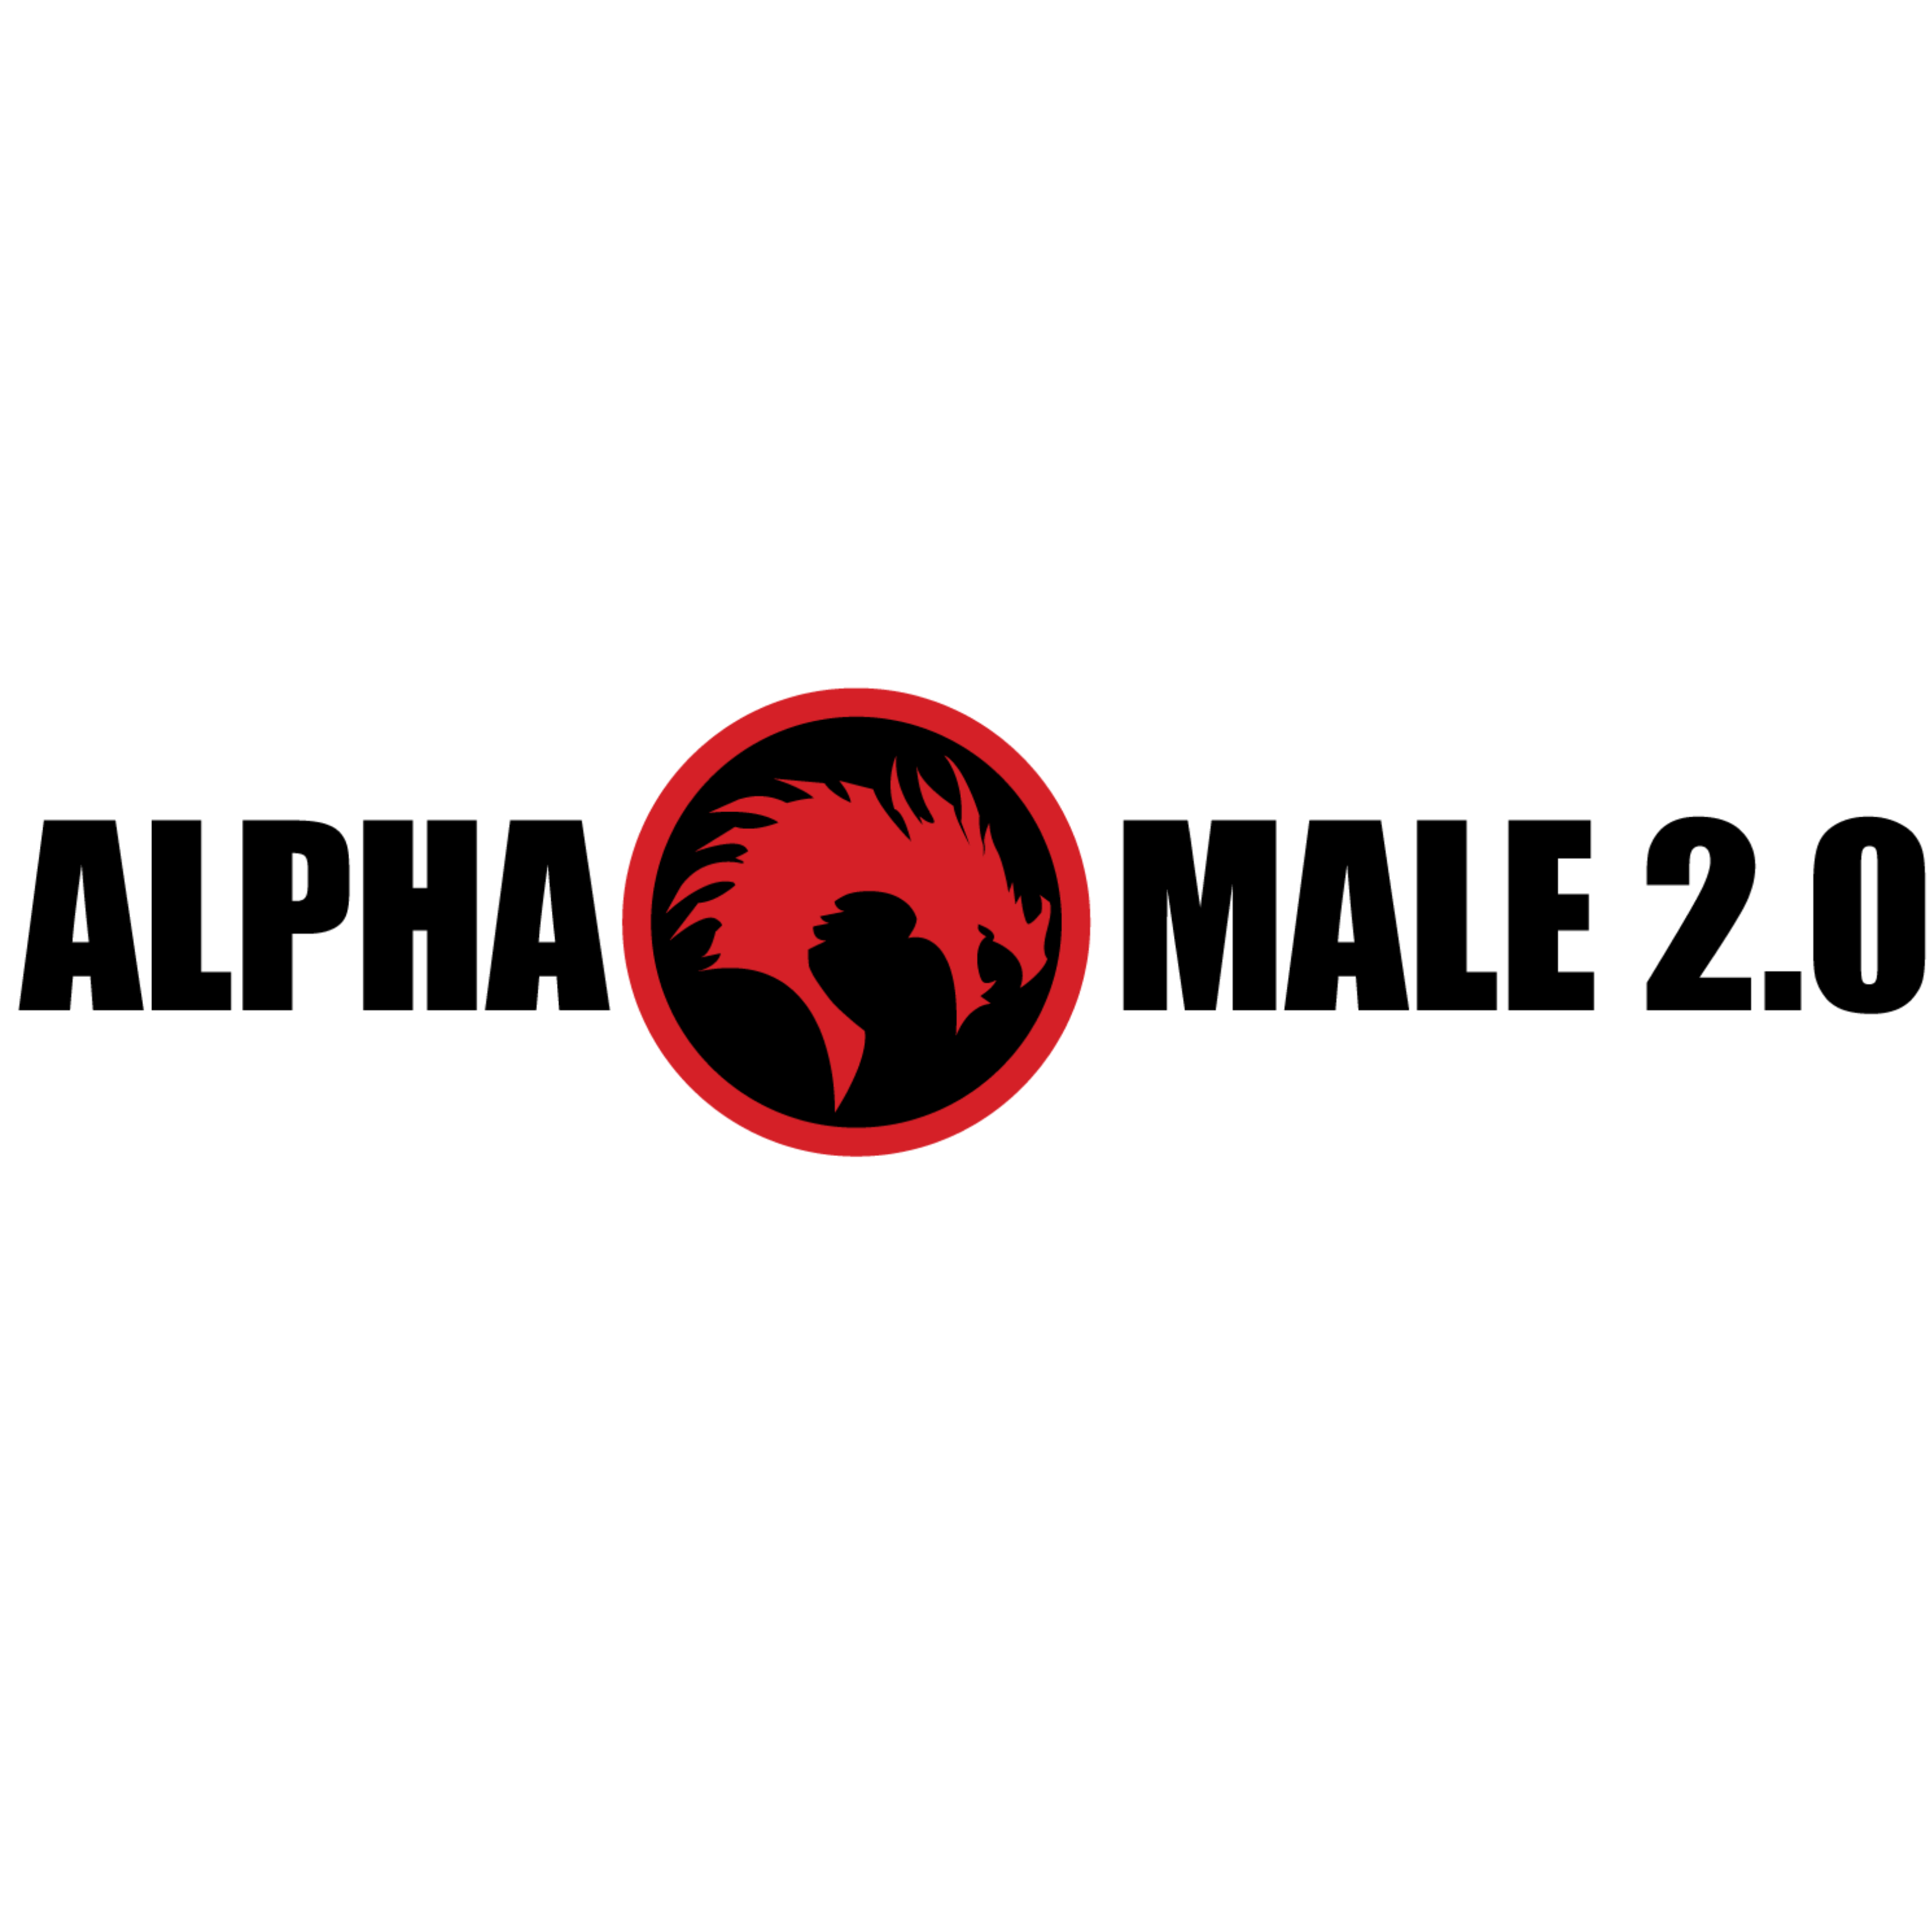 Key Differences Between Alpha Male 1.0's and 2.0's